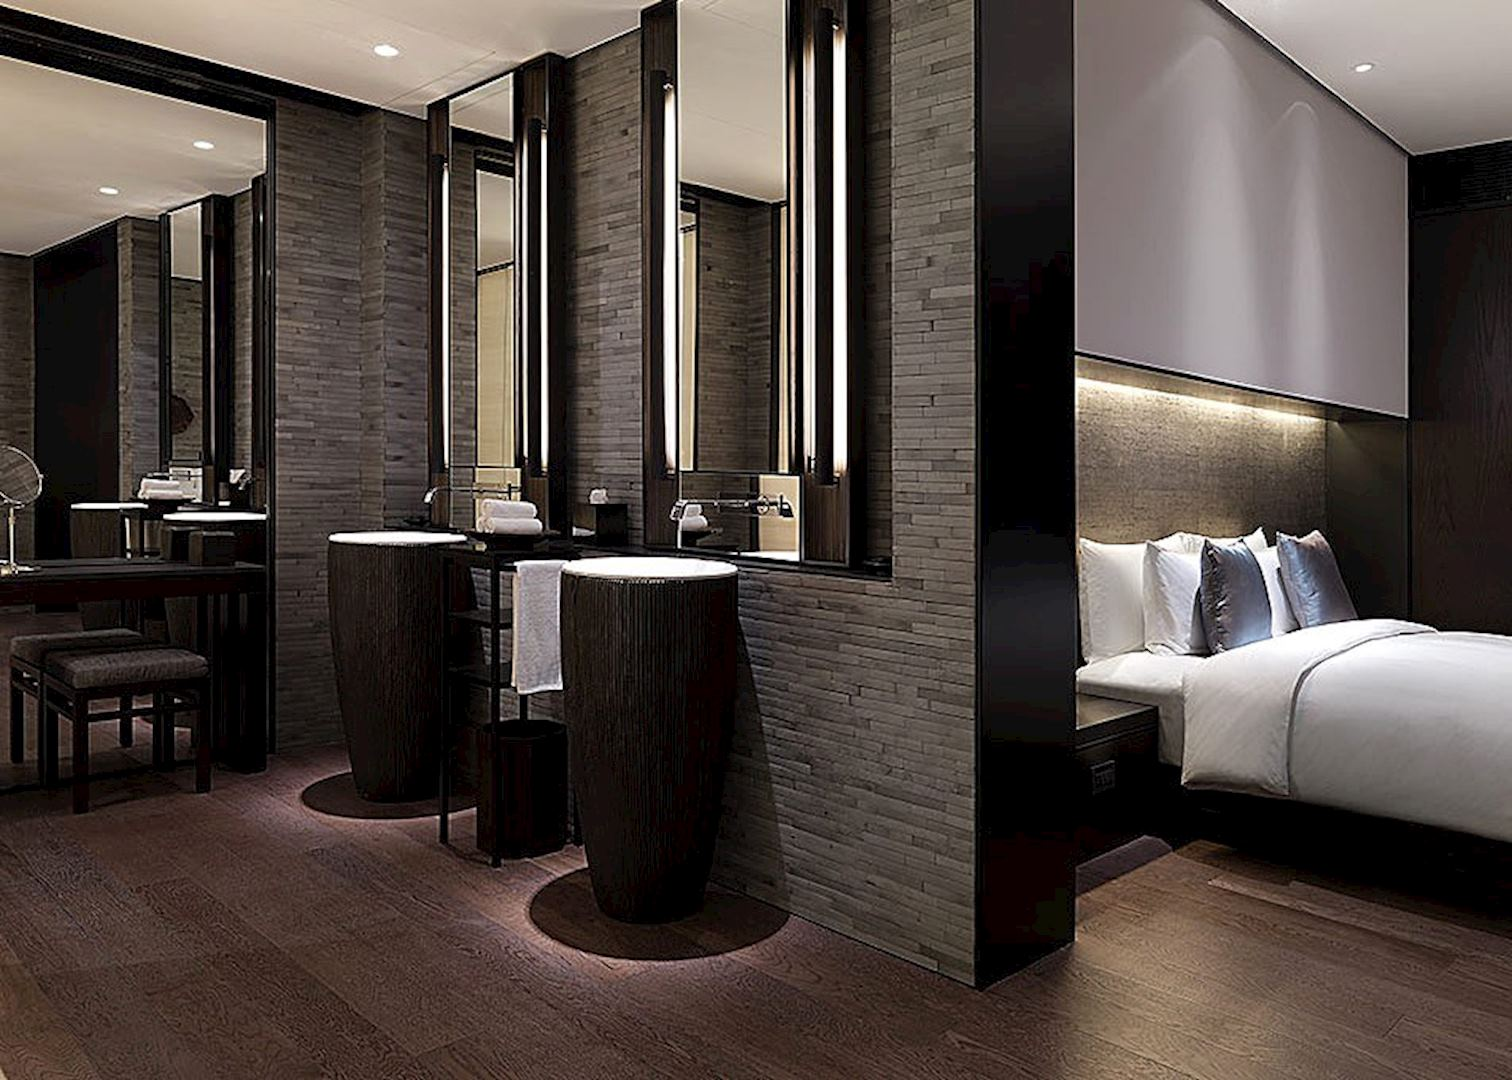 Puli hotel and spa hotels in shanghai audley travel for Giorgio aldo interior designs